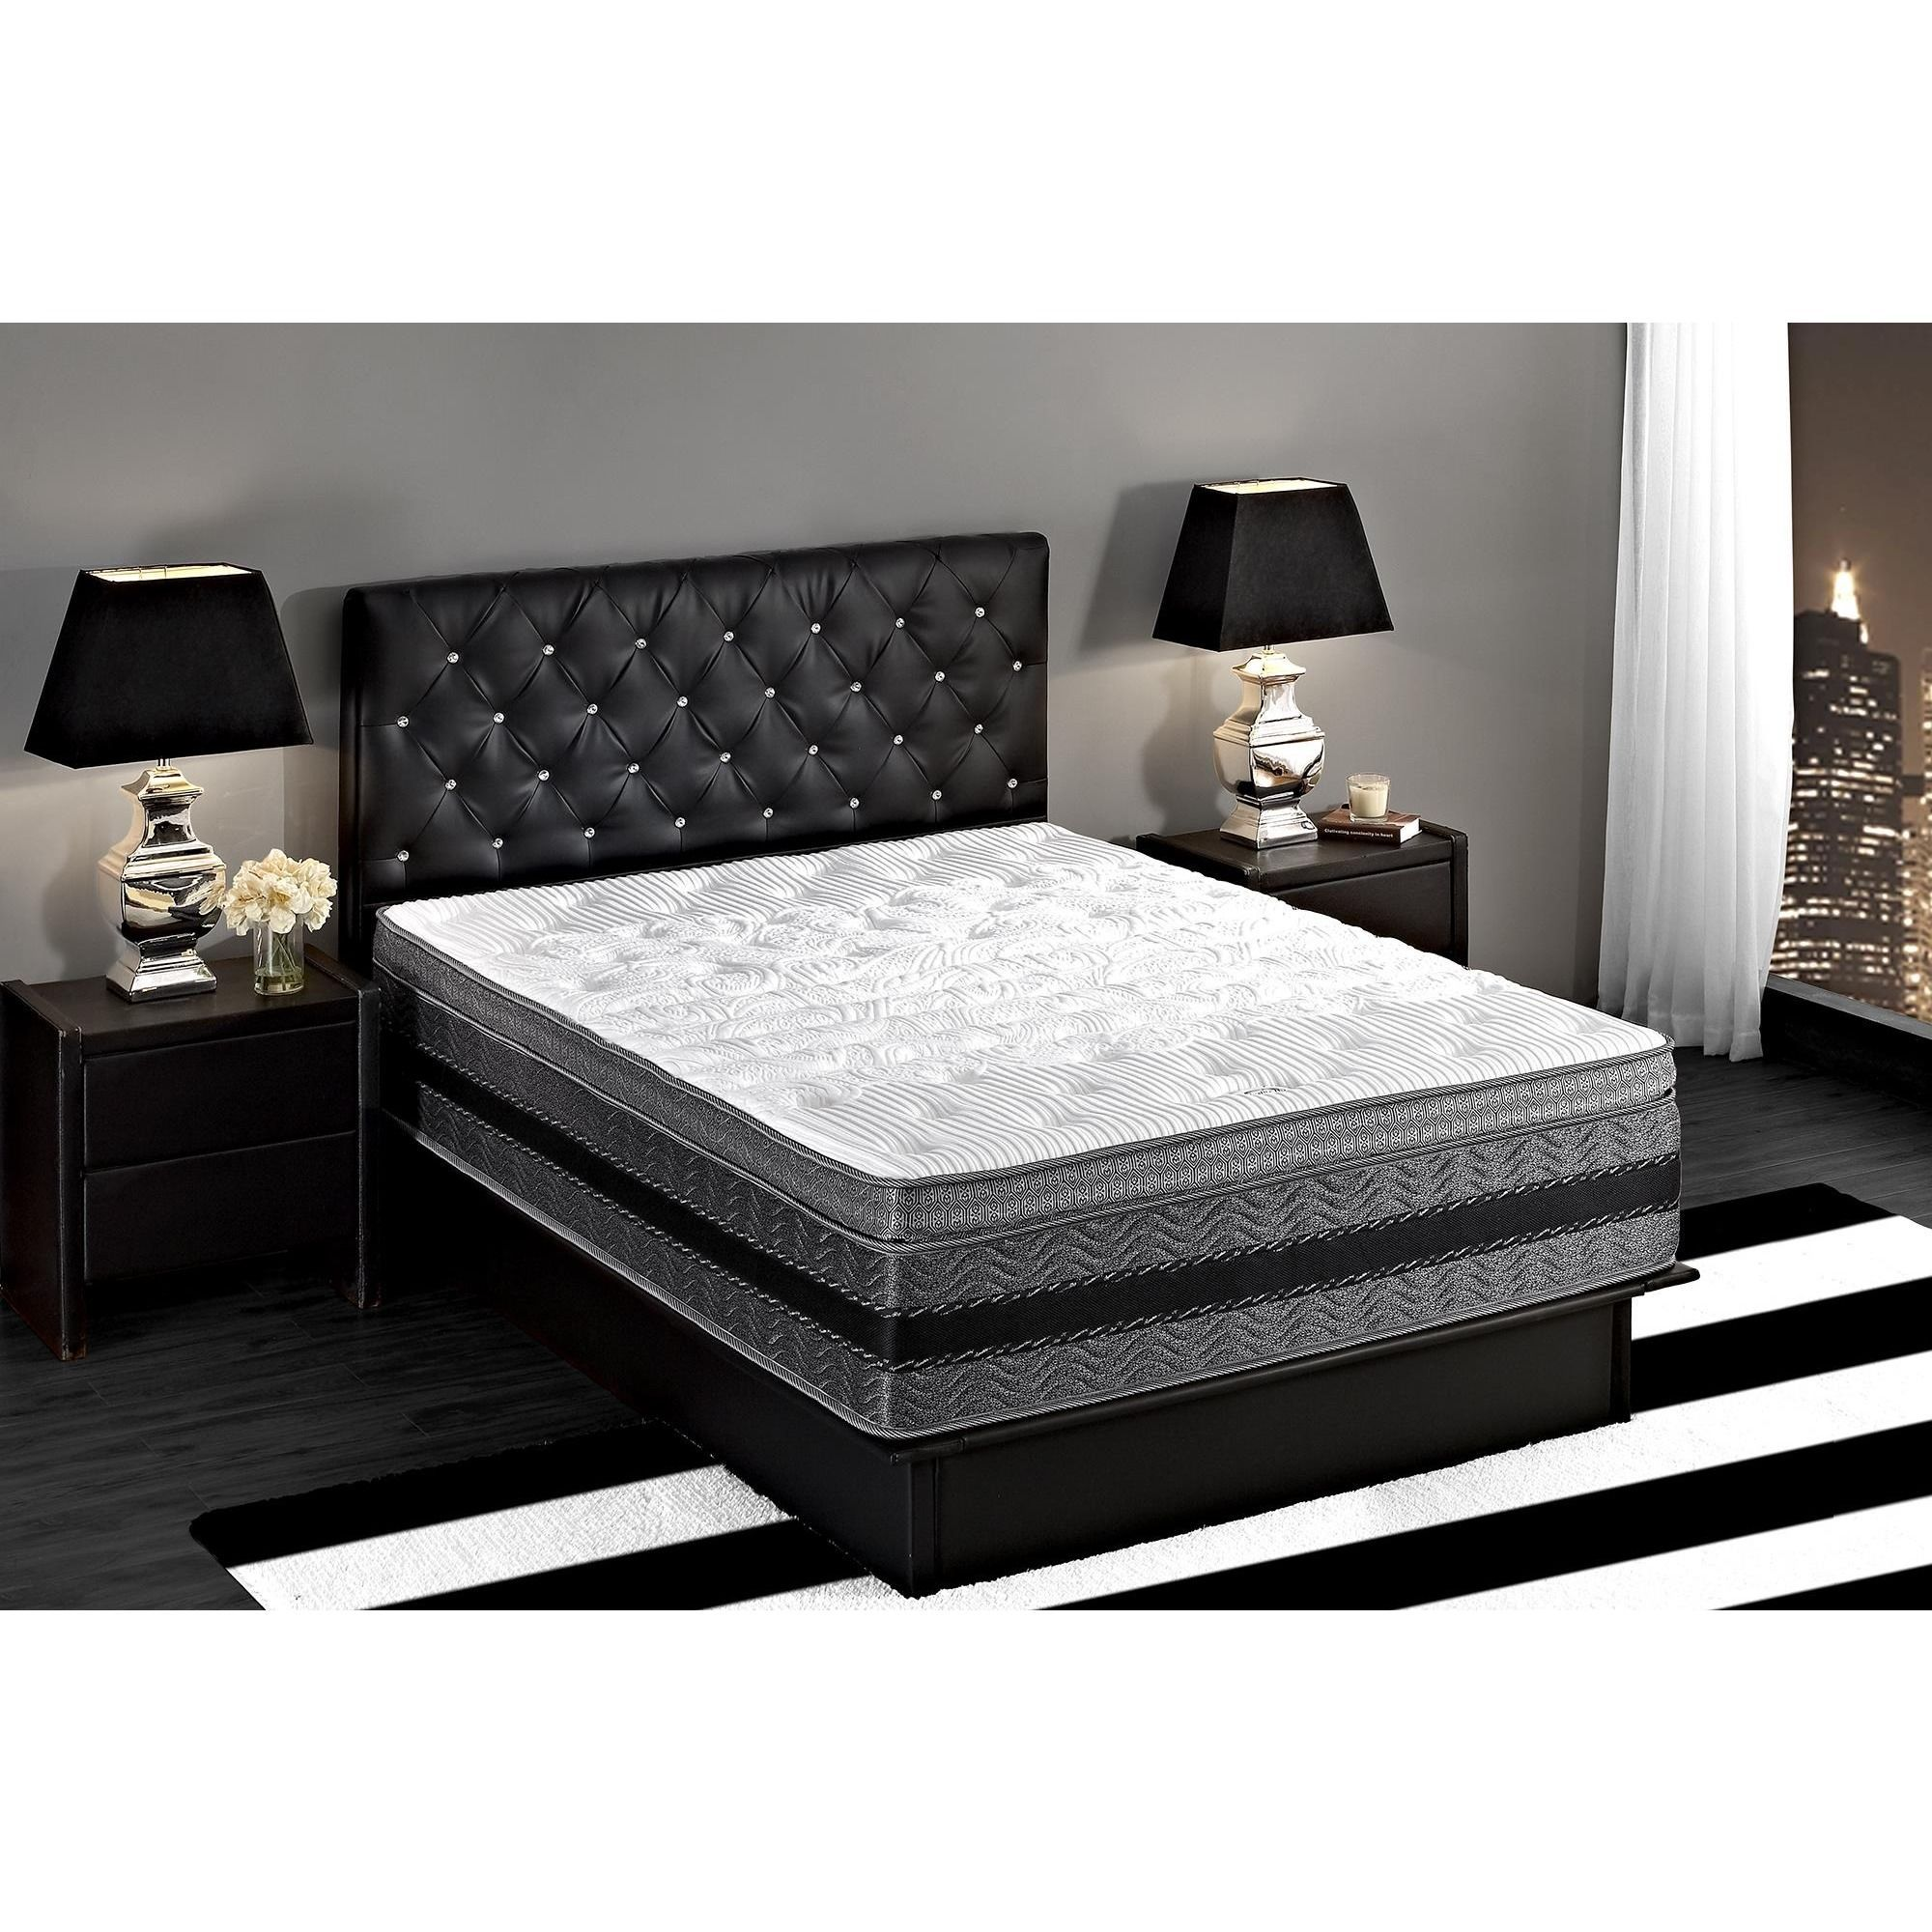 coil sourceimage mattress sleep products justice certipur collection us hybrid independently inch gel signature mattresses foam with details memory certified eng encased black